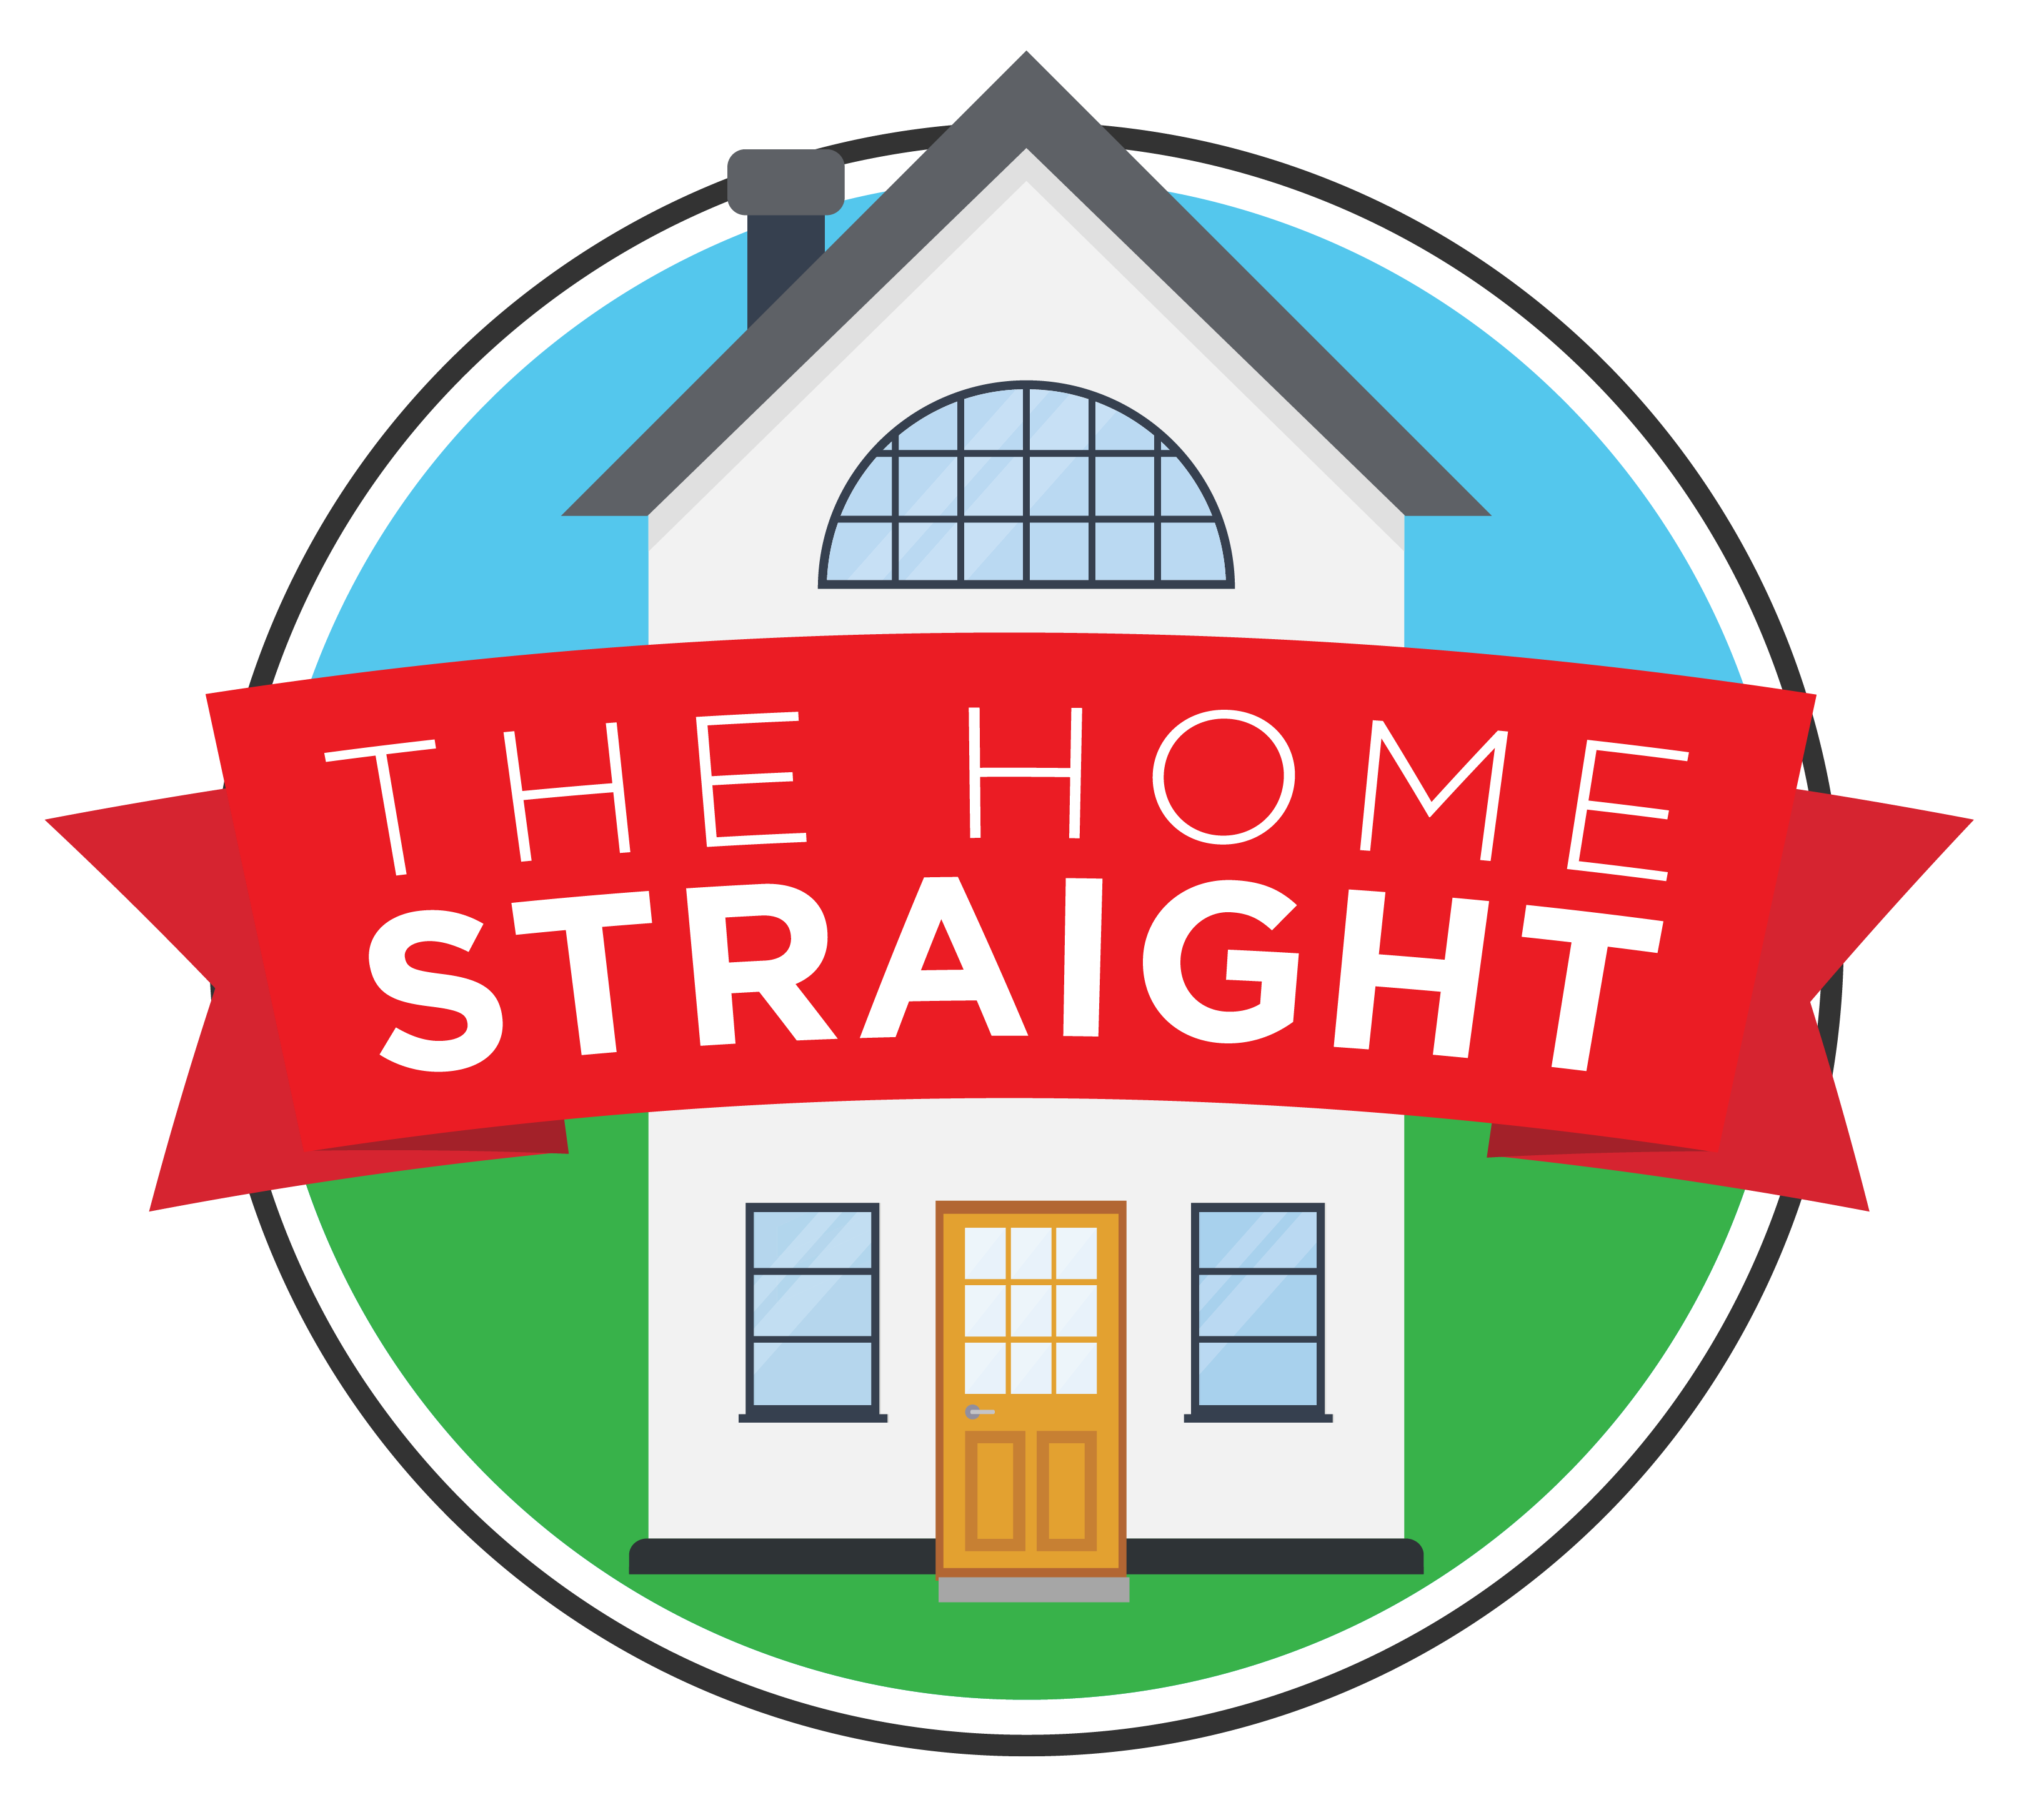 The home straight video series will help you weigh up your options when thinking about selling